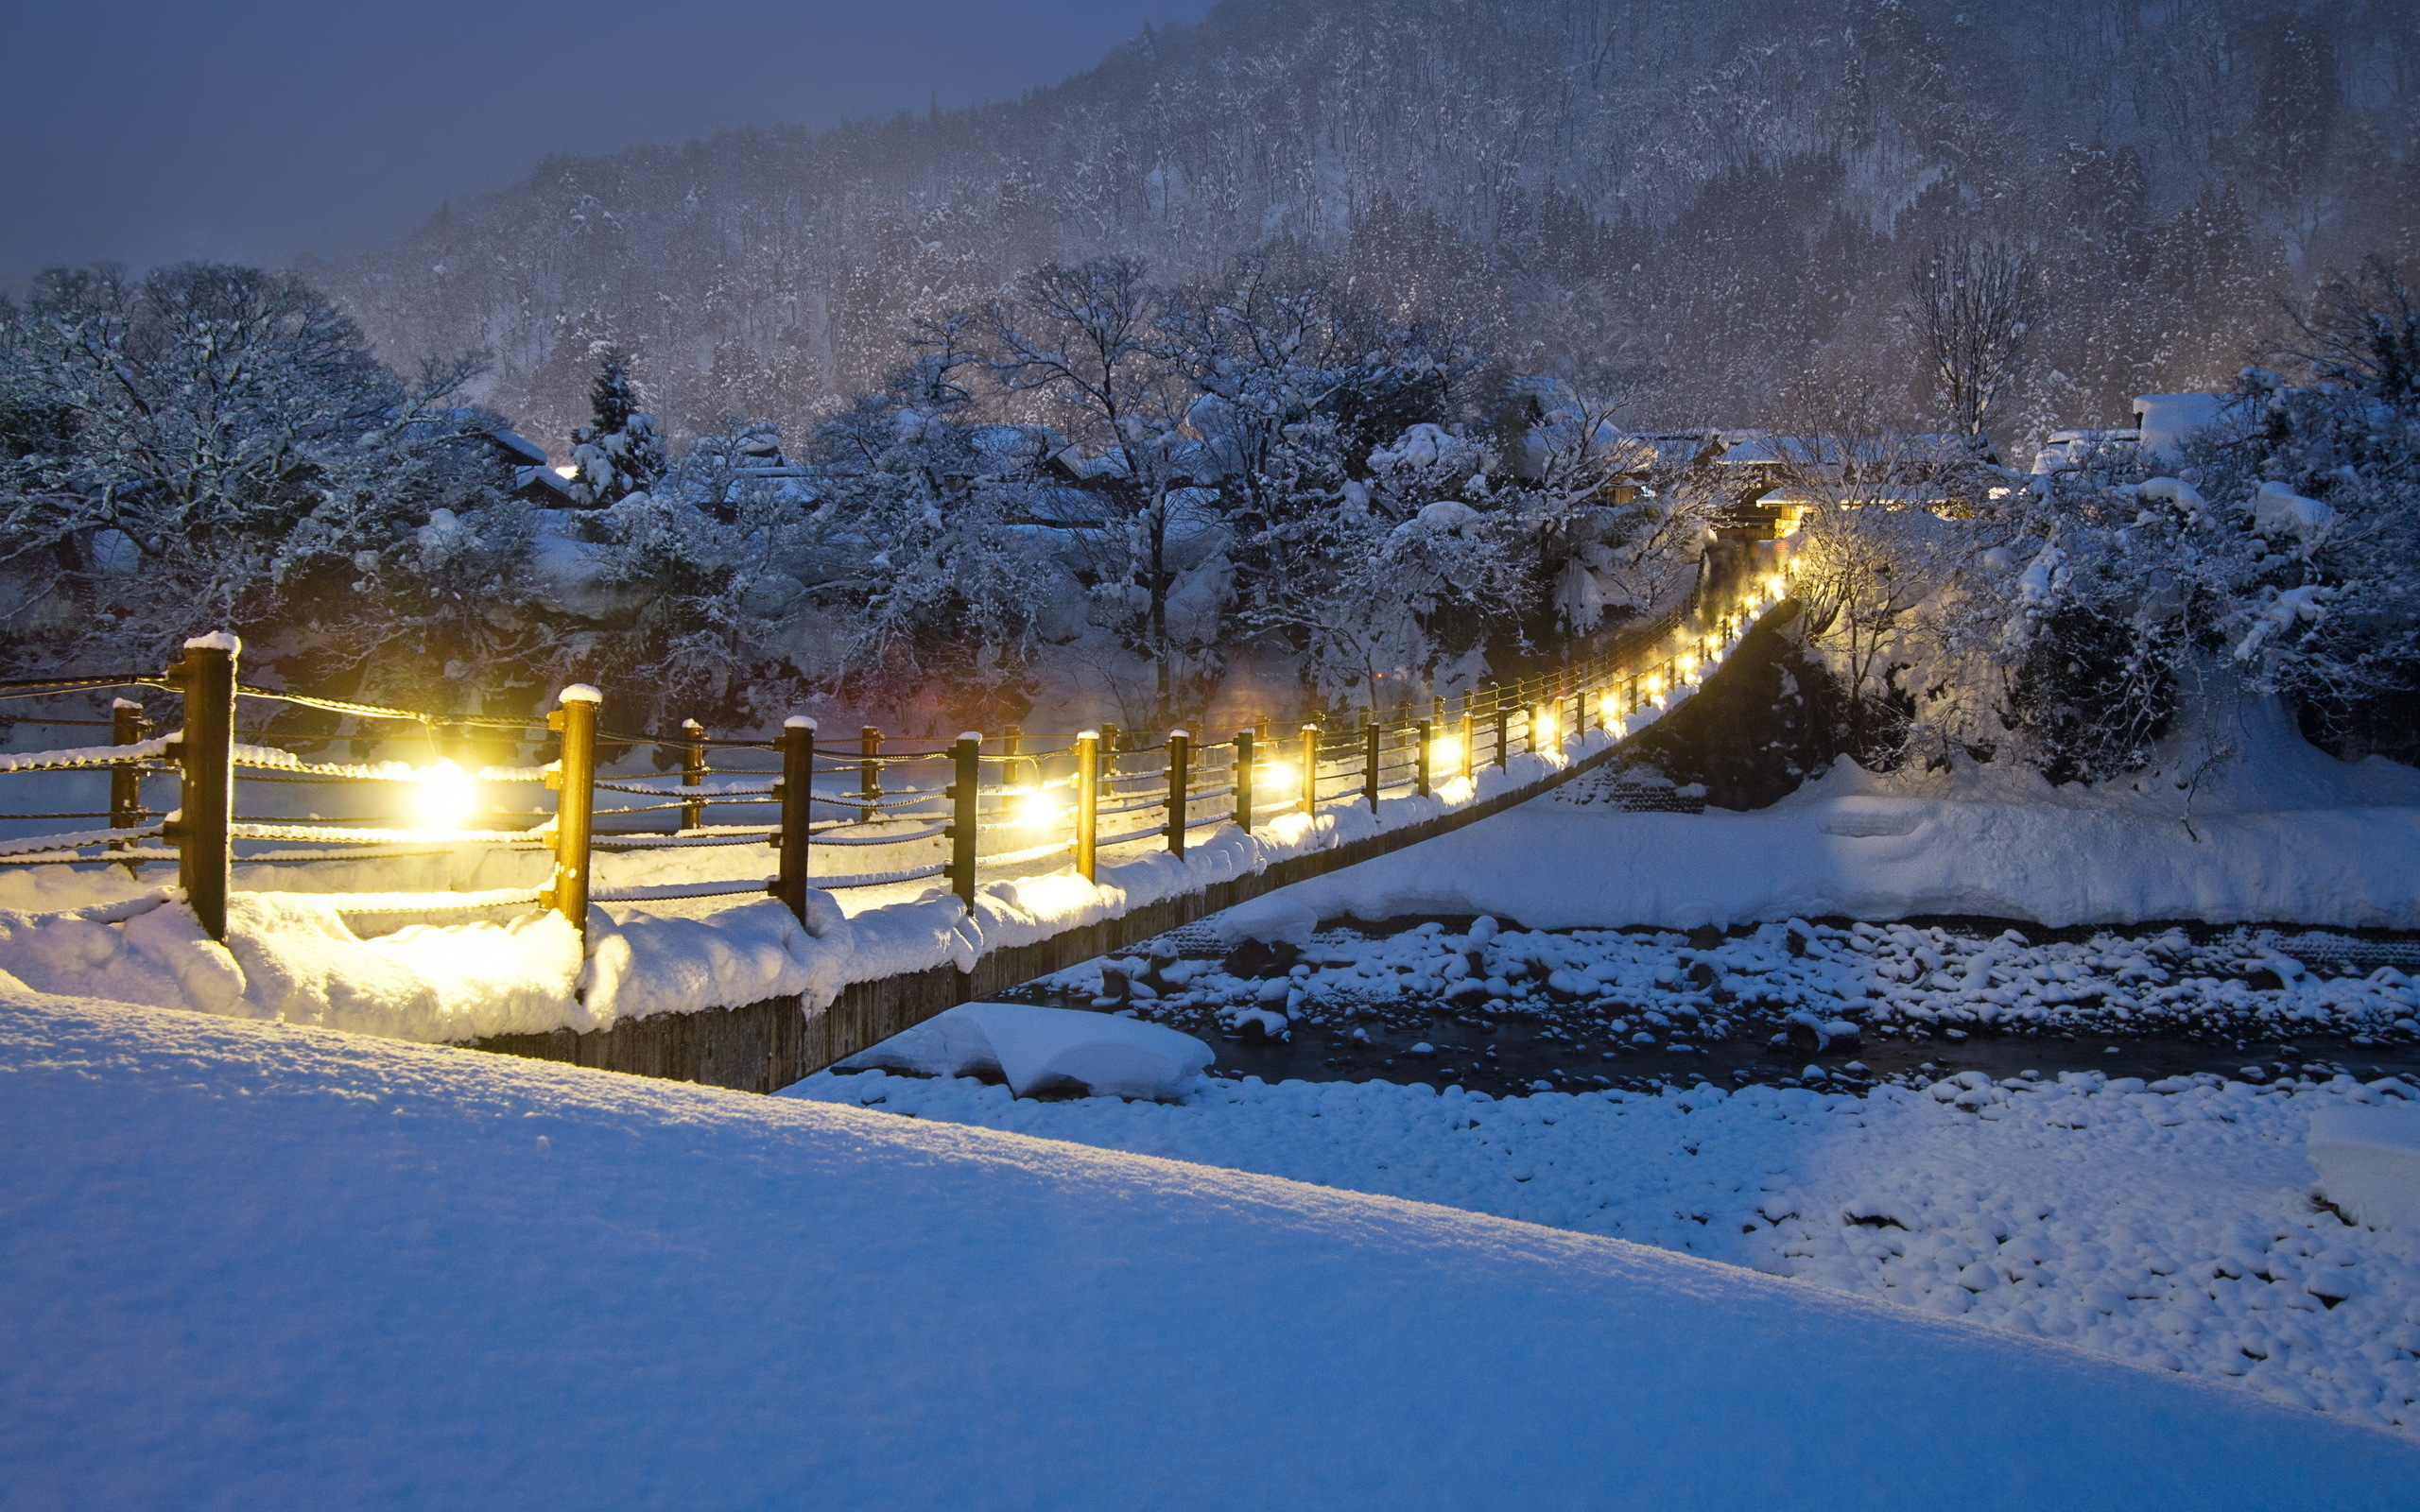 Popular Wallpaper Night High Resolution - winter-night-bridge-hd-wallpapers-picture-images-download-for-free  Pic-325593.jpg